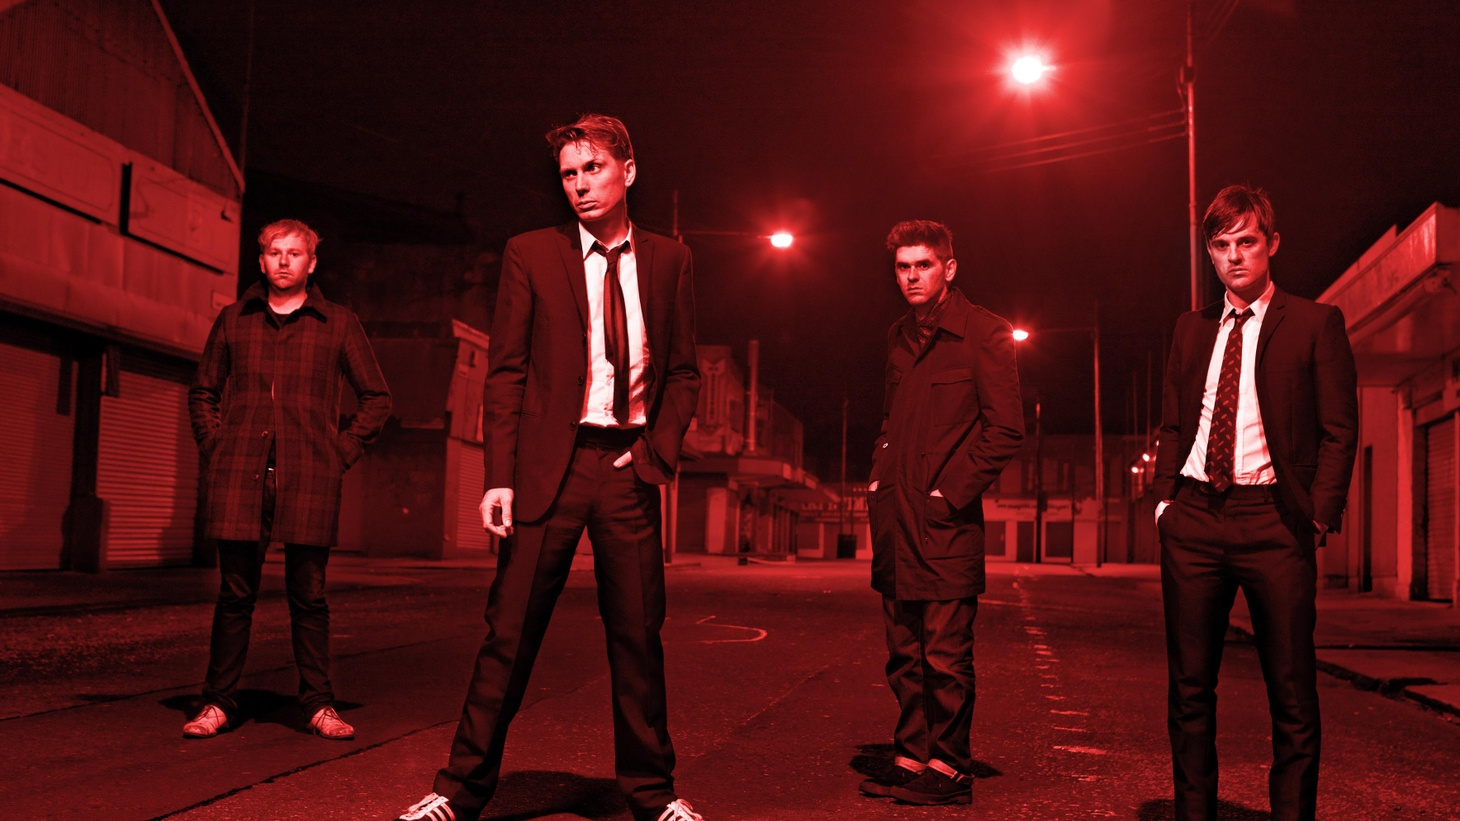 """Inspired by the tale of Alice in Wonderland and the cultural impact of director Tim Burton, Franz Ferdinand contribute an imaginative and original track to the Almost Alice soundtrack. Today's Top Tune is """"The Lobster Quadrille."""""""